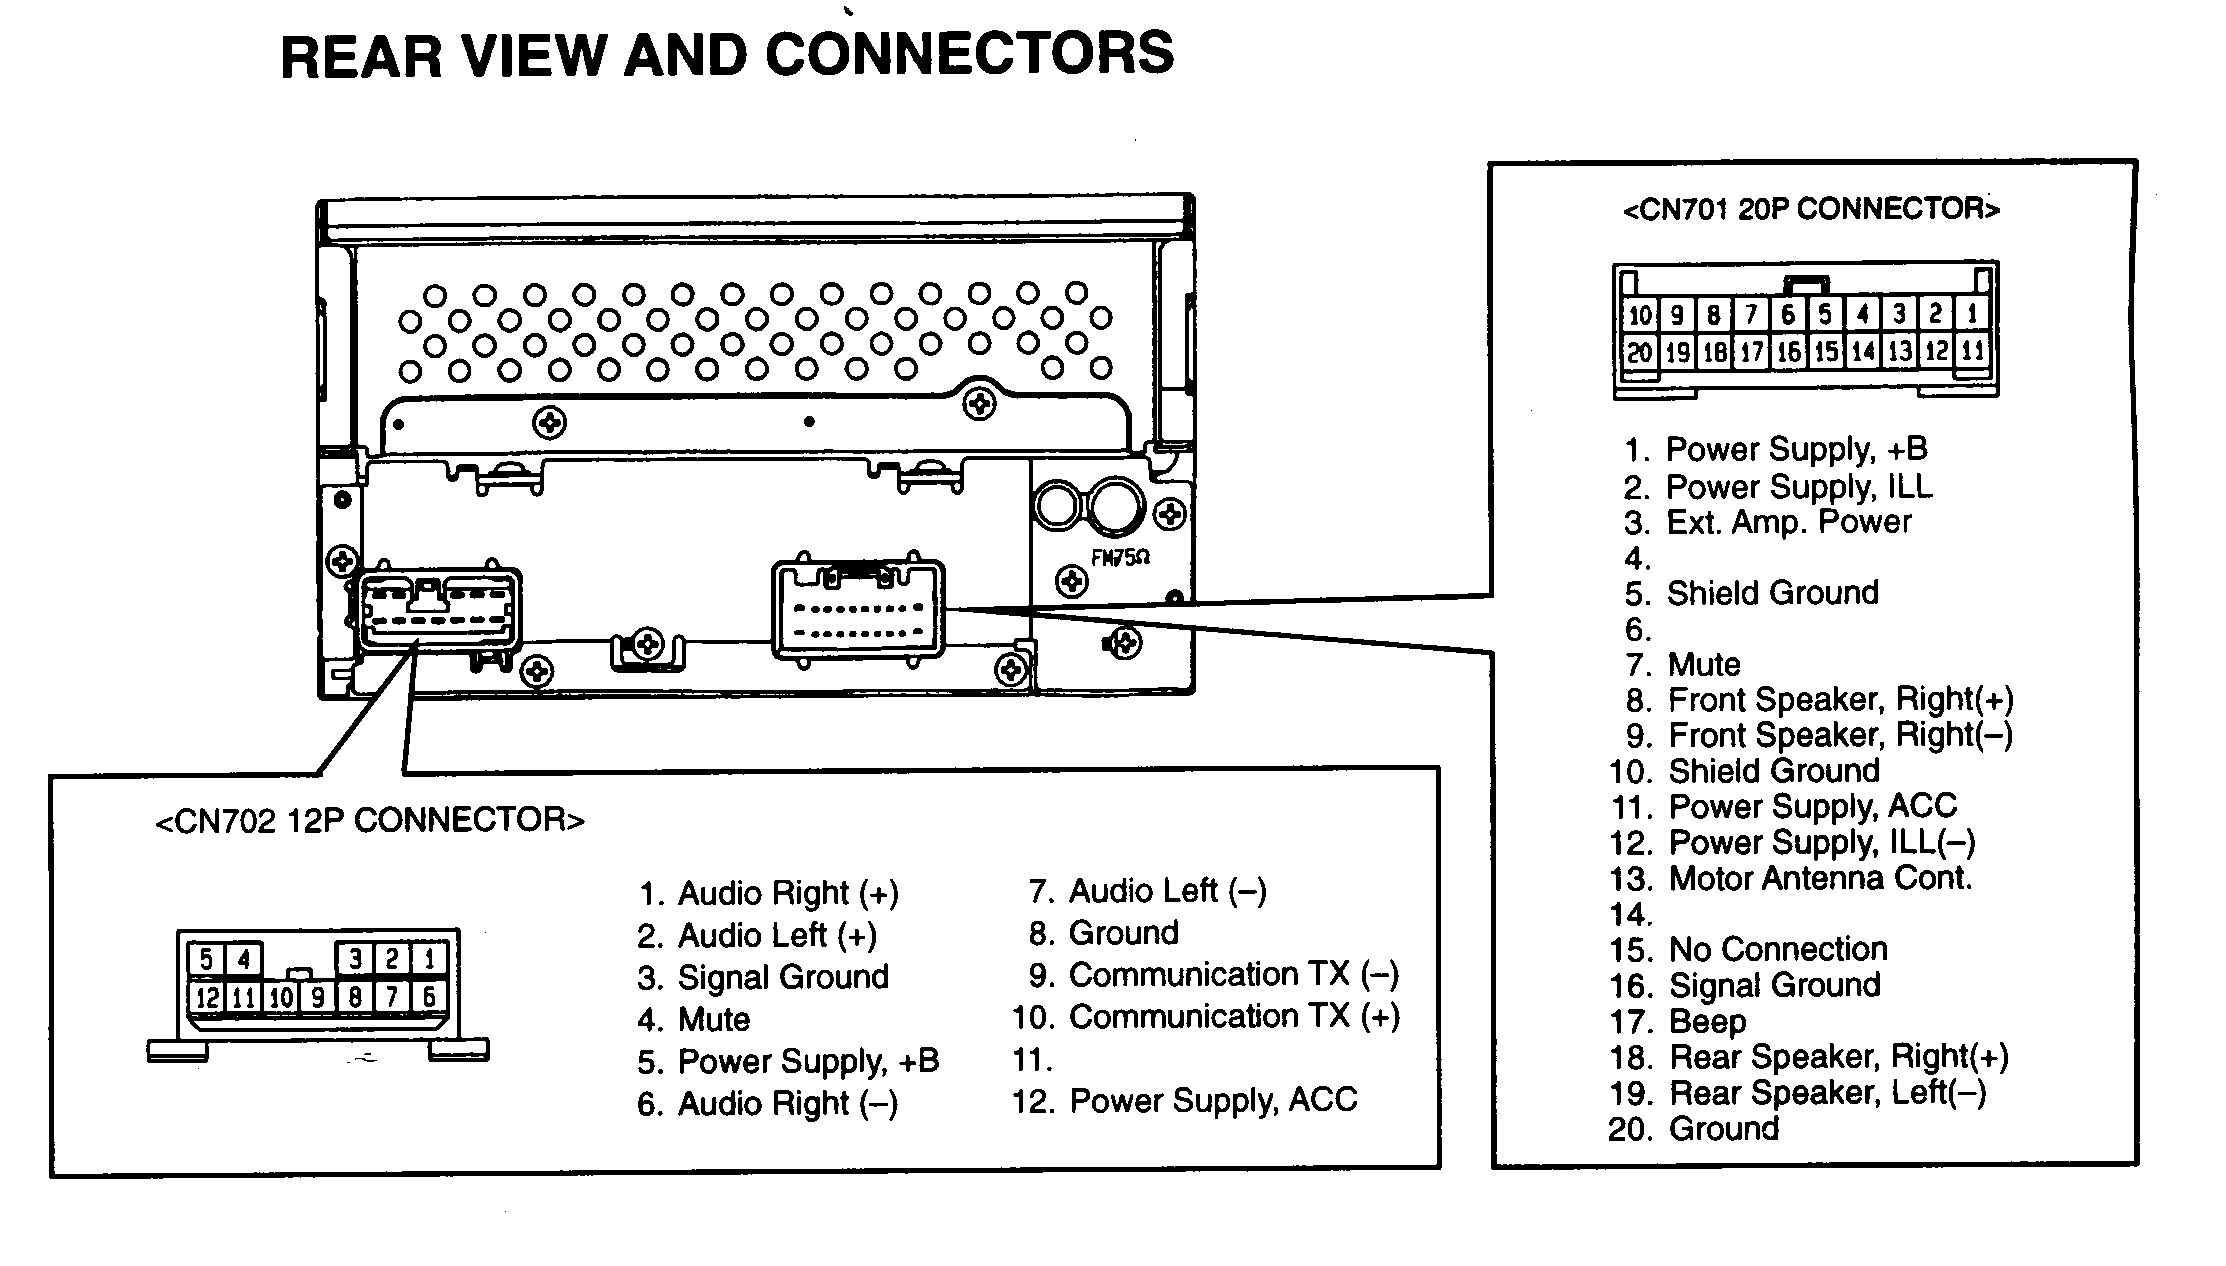 Bose Car Stereo Wiring Diagram with Factory Car Stereo Wiring Diagrams Wiring Diagram Of Bose Car Stereo Wiring Diagram